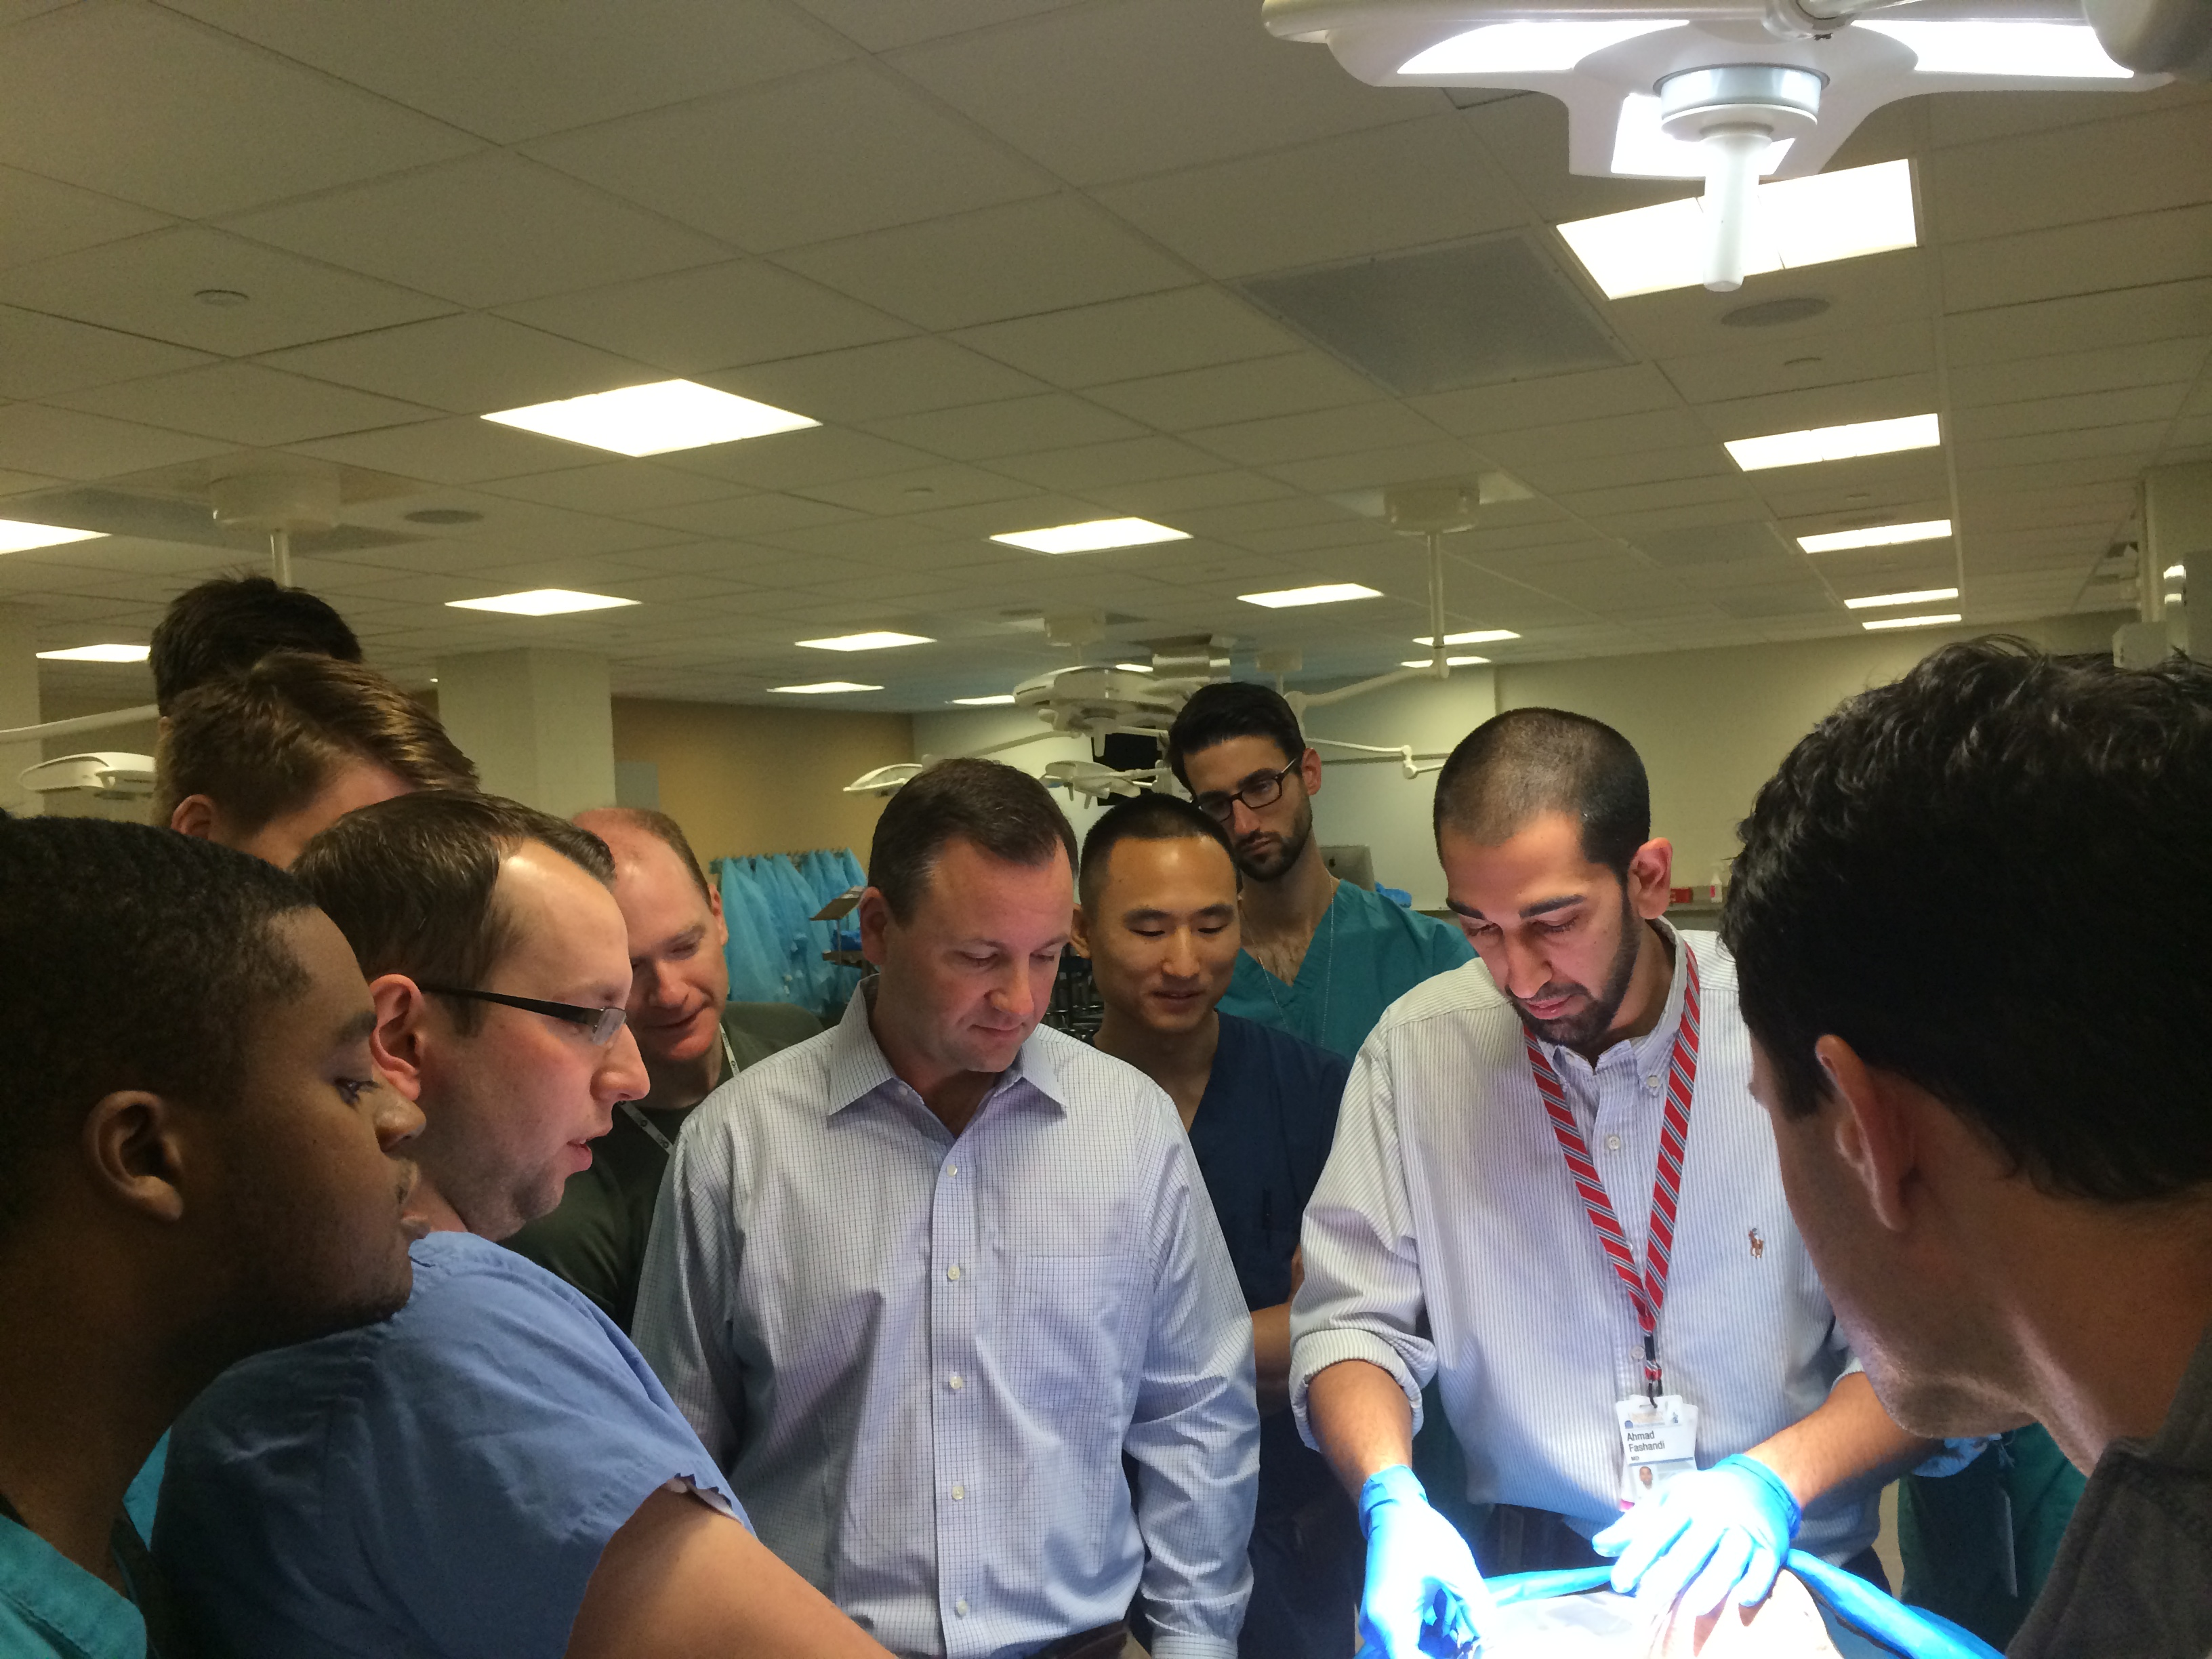 Wojciech Czoch and Ahmad Fashandi present the anatomy of the shoulder during cadaver dissection.